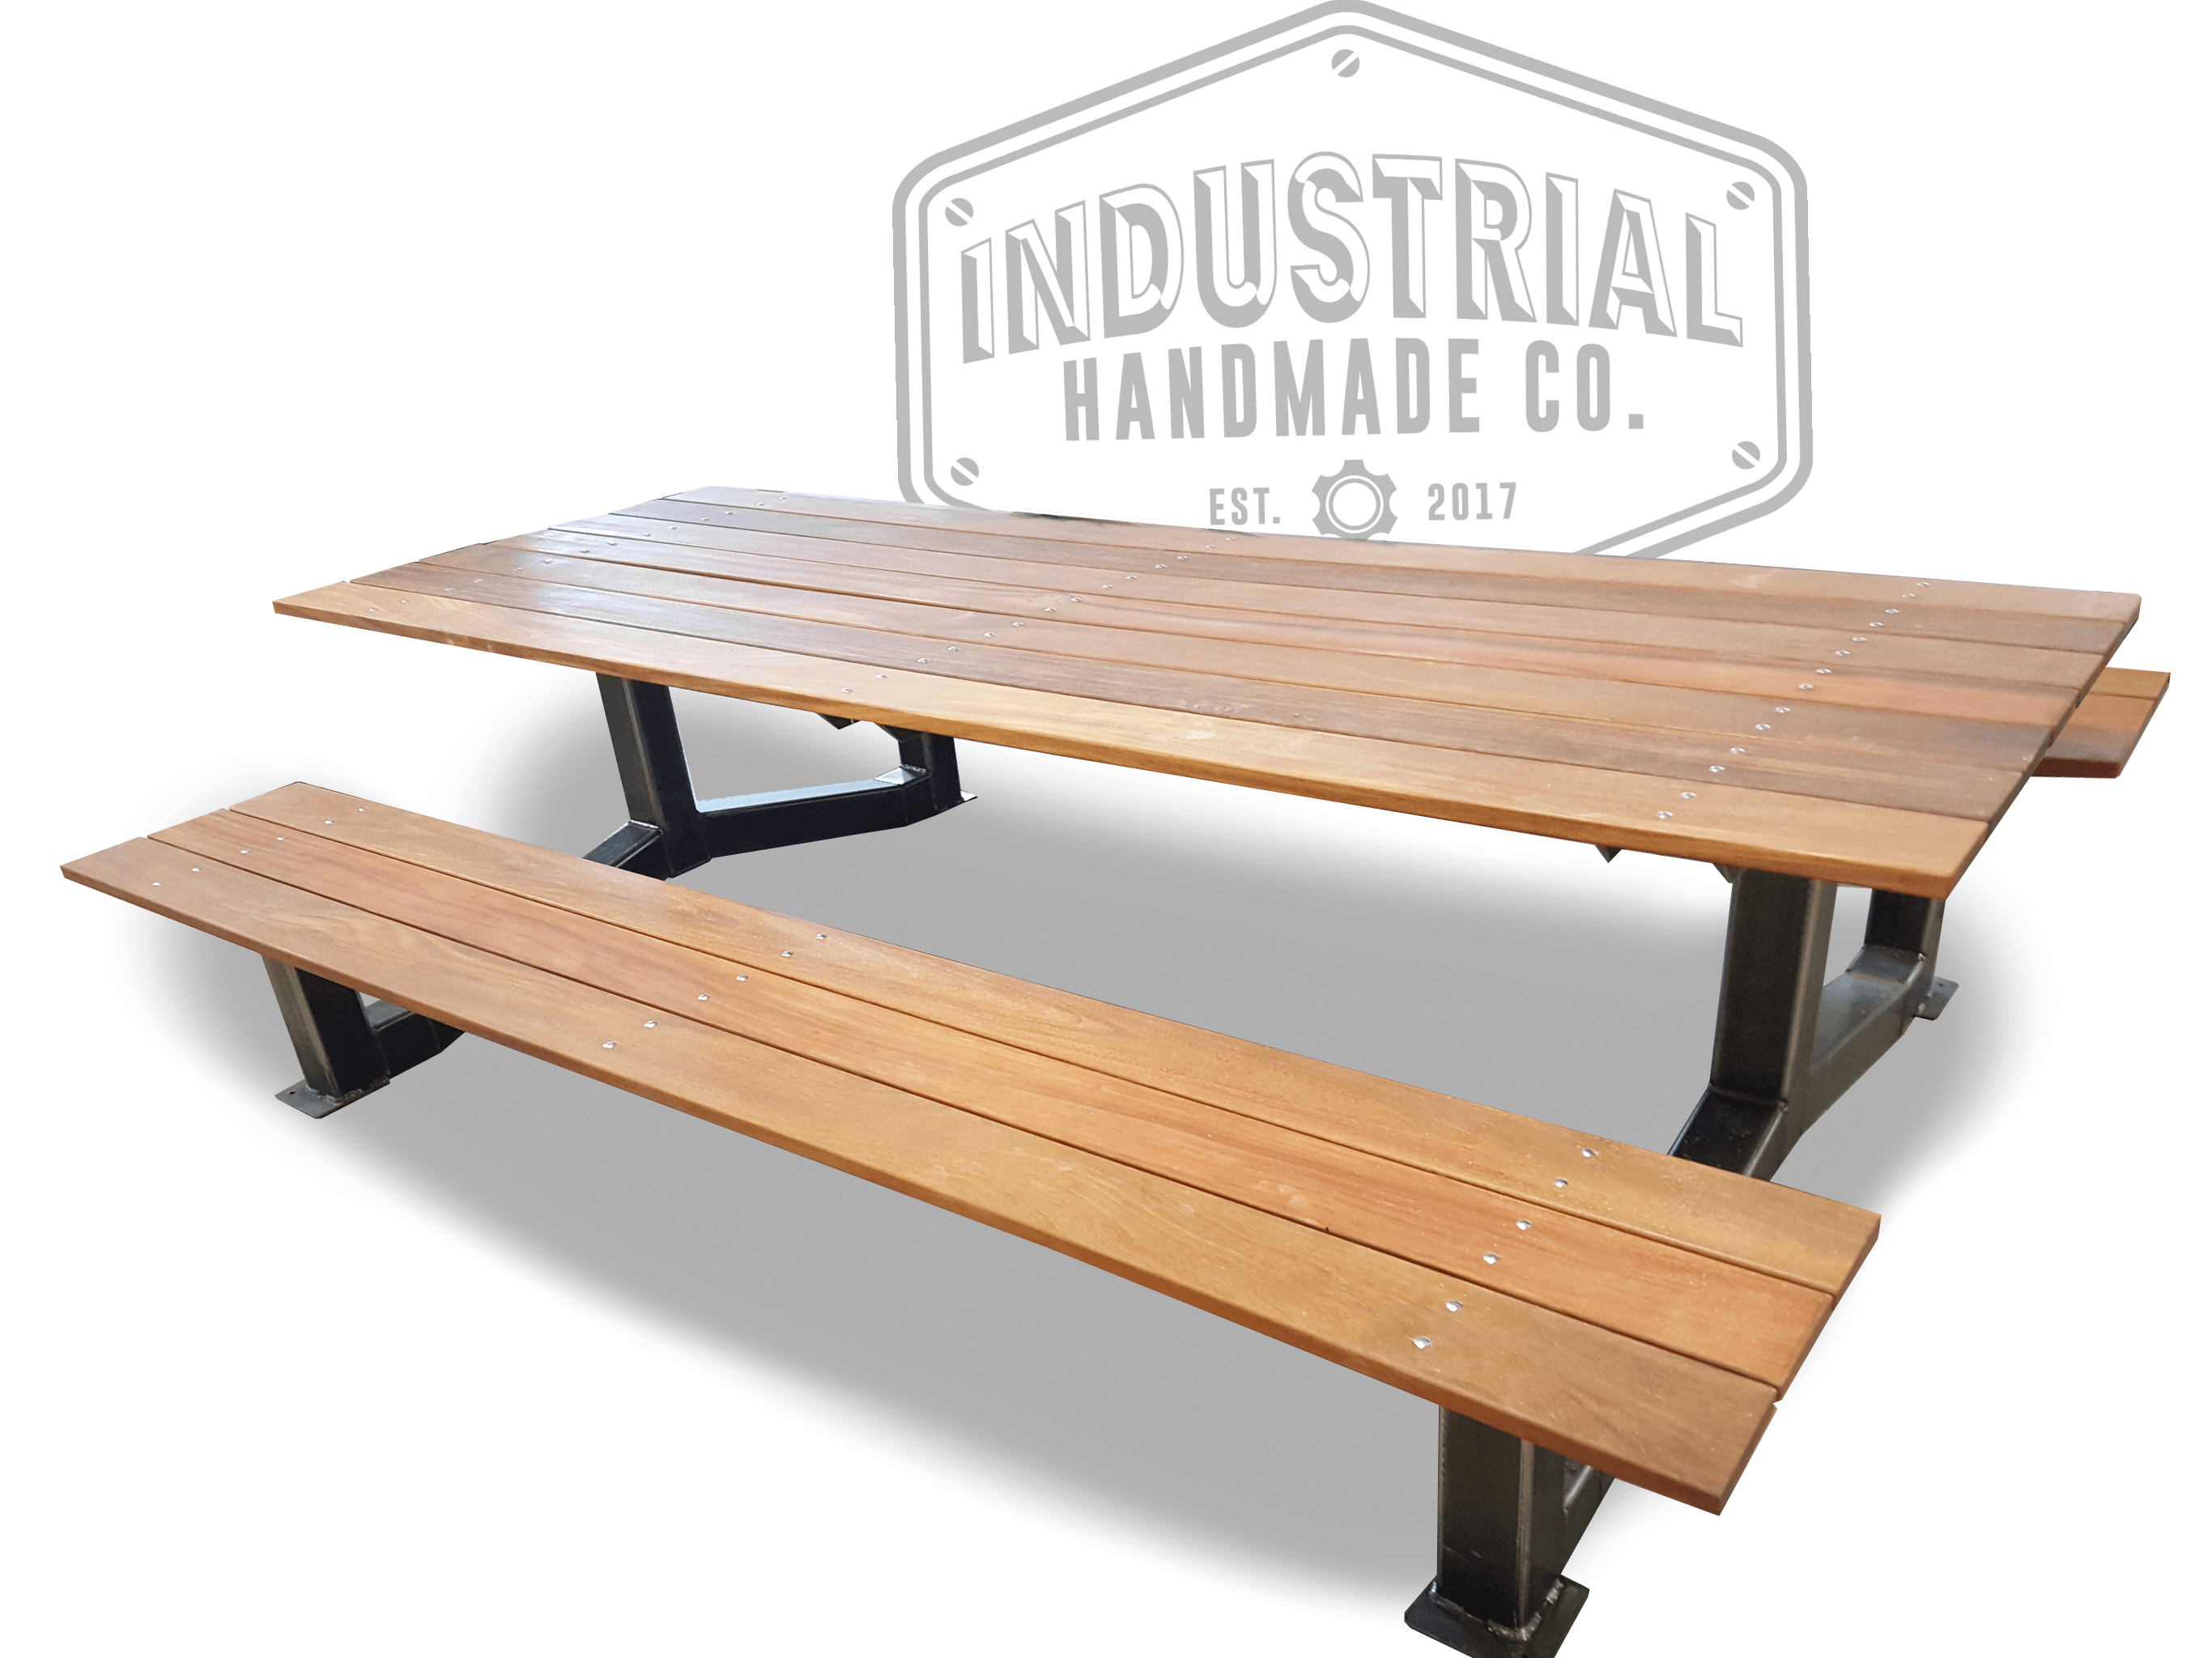 Hand Made Nashville Industrial Outdoor Picnic Table by